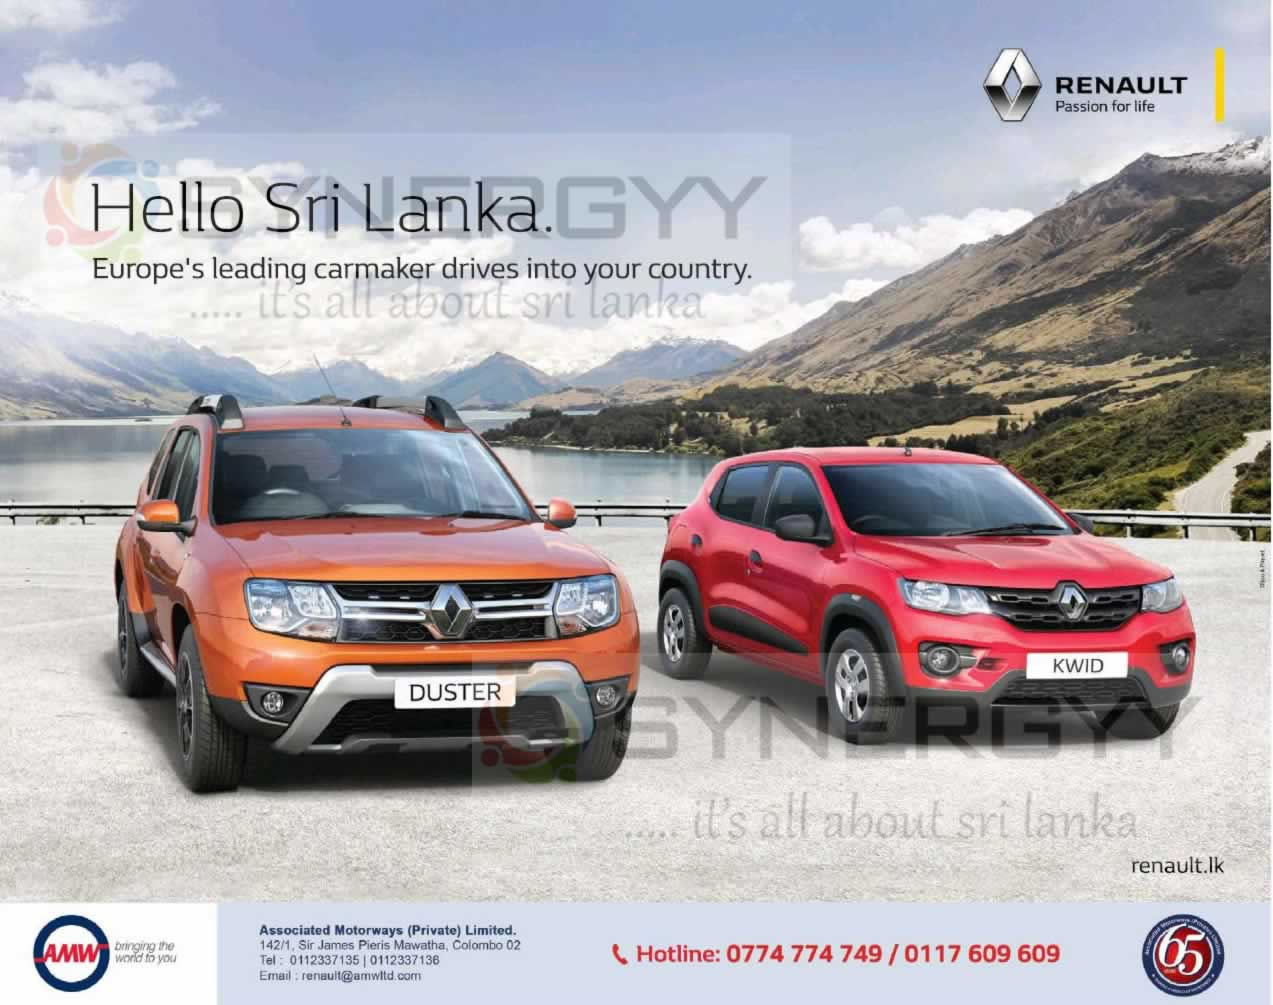 Amw Introduce Renault Kwid And Renault Duster In Sri Lanka